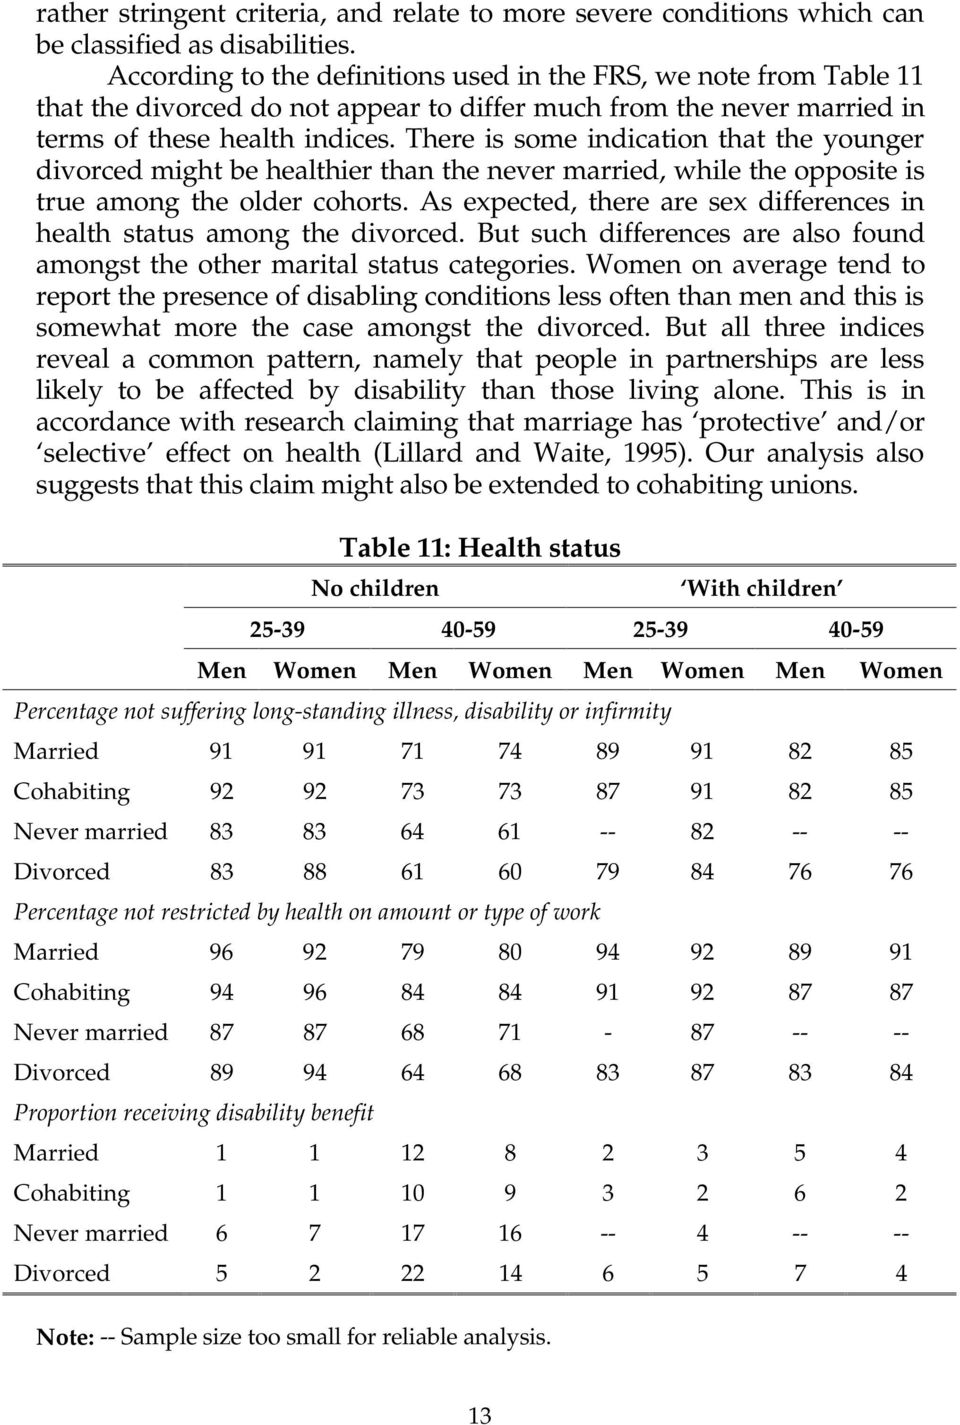 There is some indication that the younger divorced might be healthier than the never married, while the opposite is true among the older cohorts.